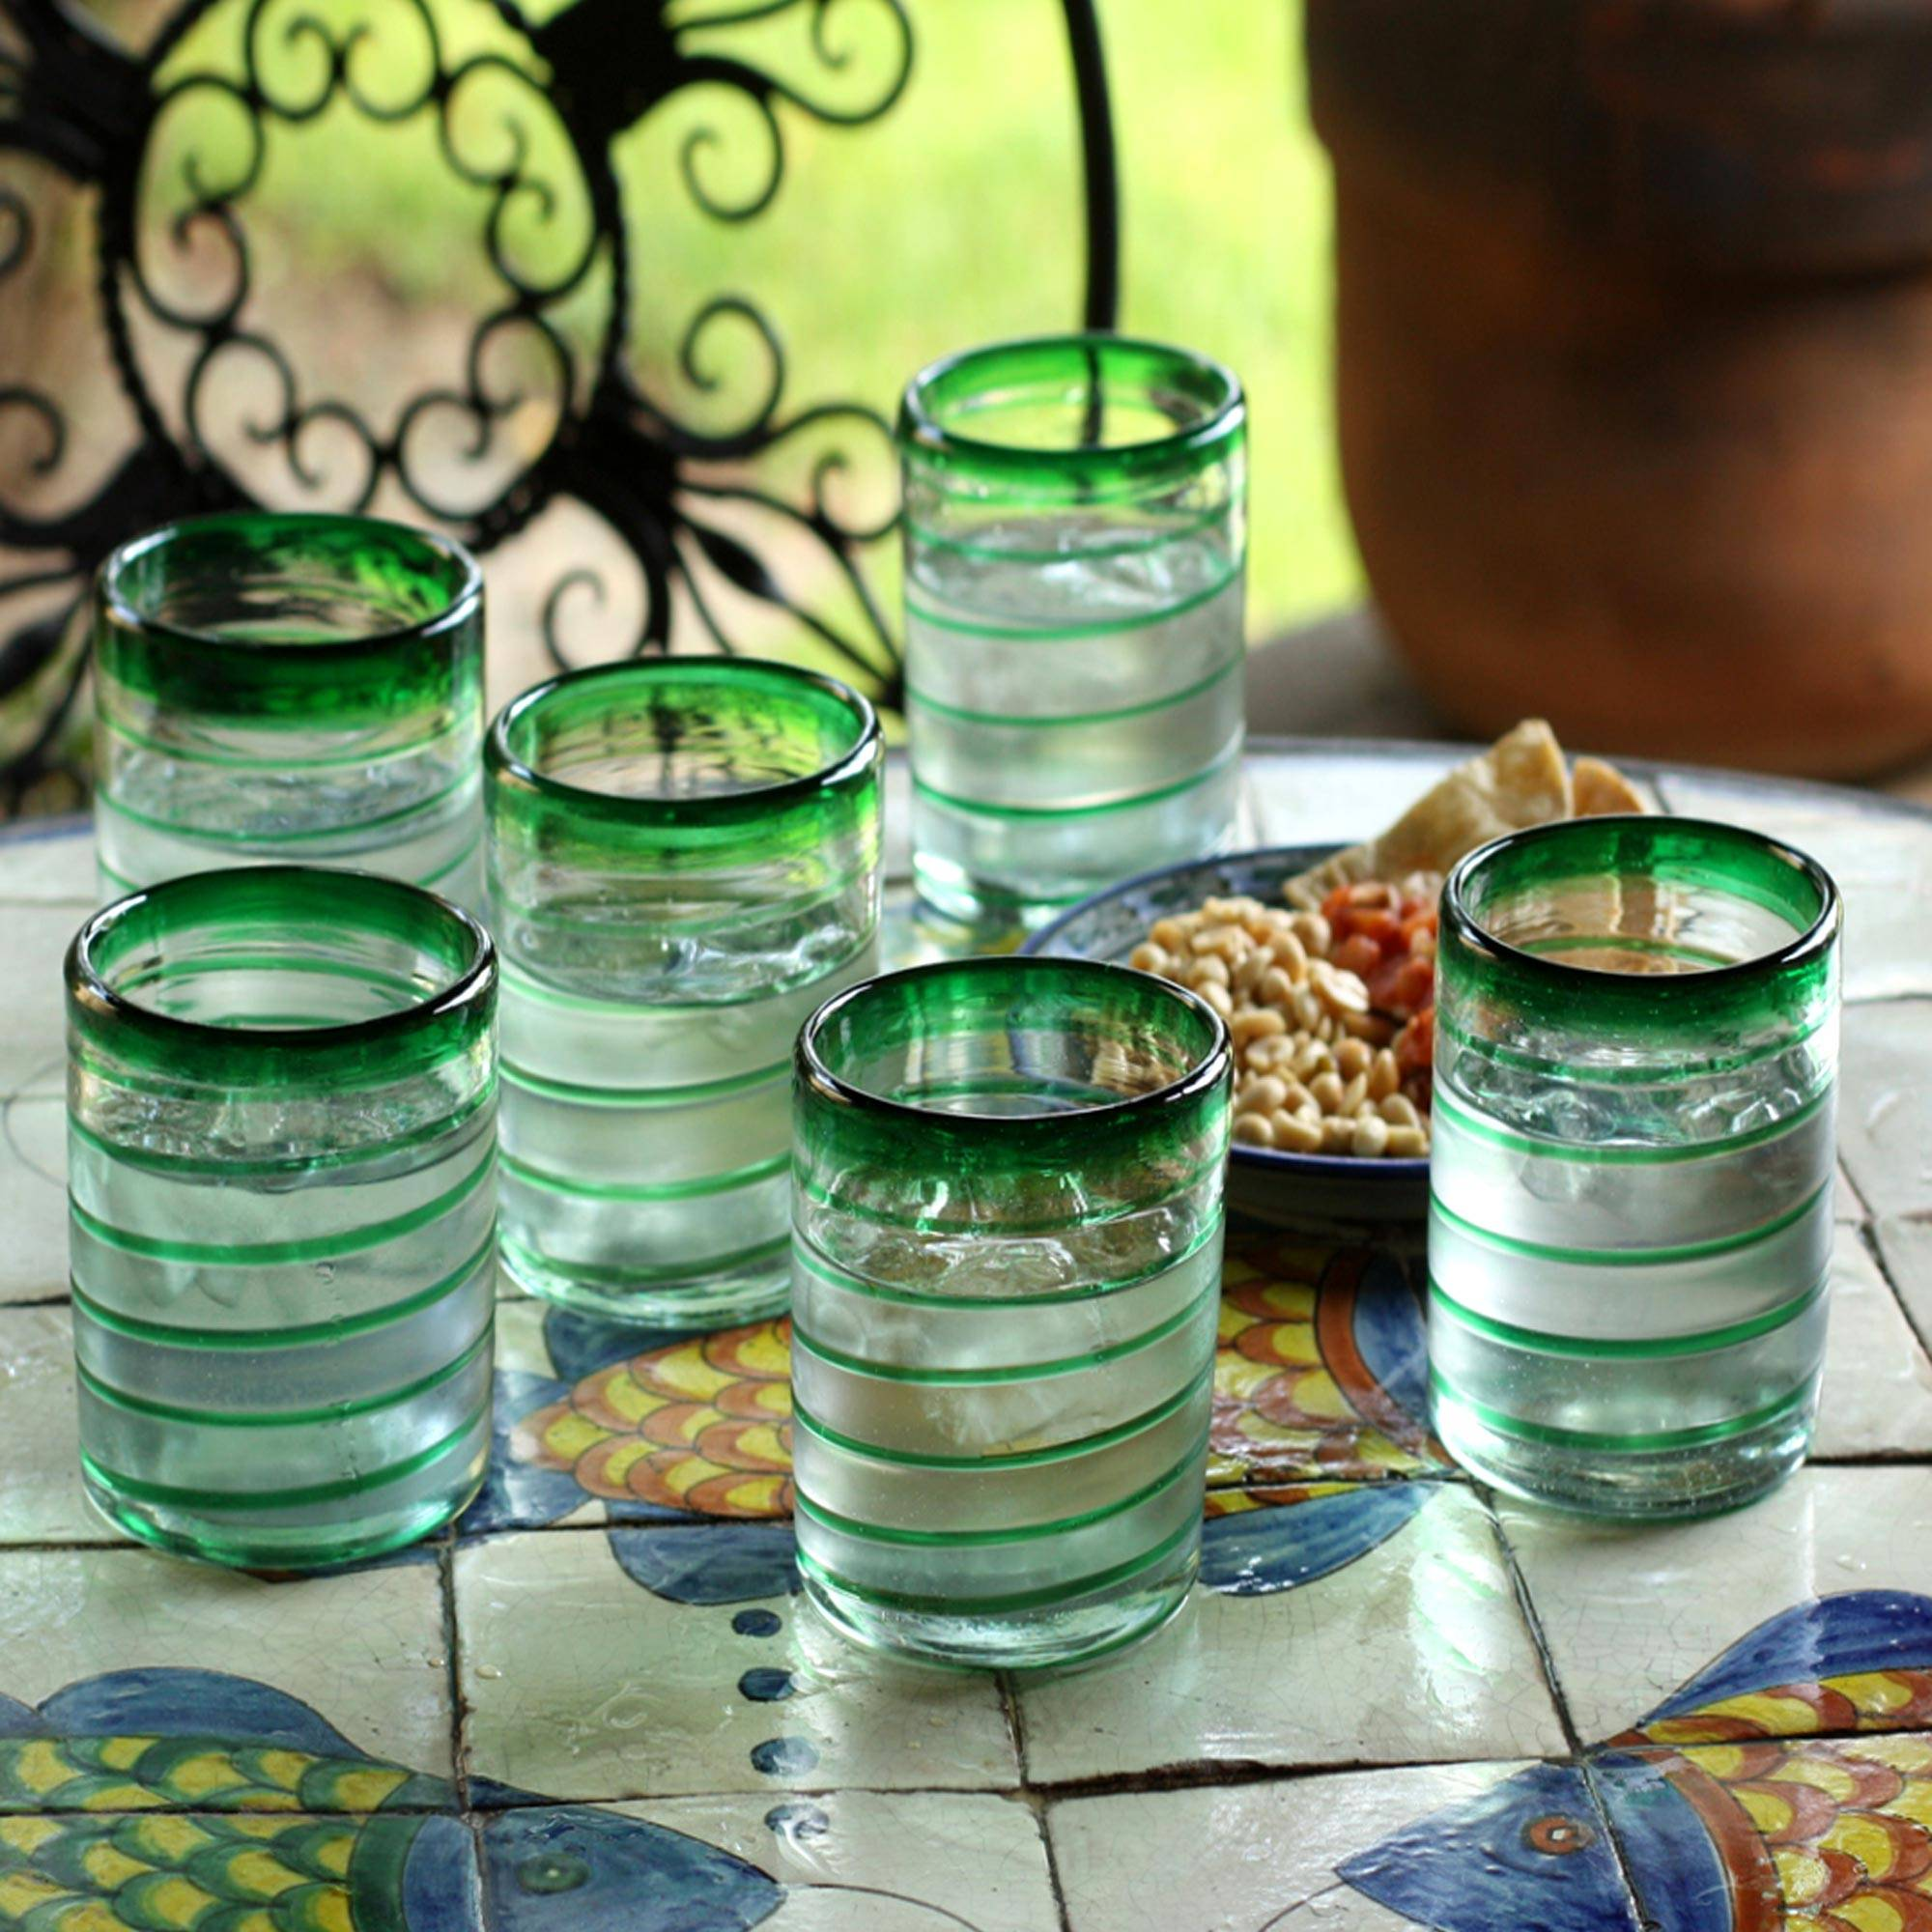 Tumblers, 'Emerald Spiral' (set of 6) Glassware for Your Home Bar